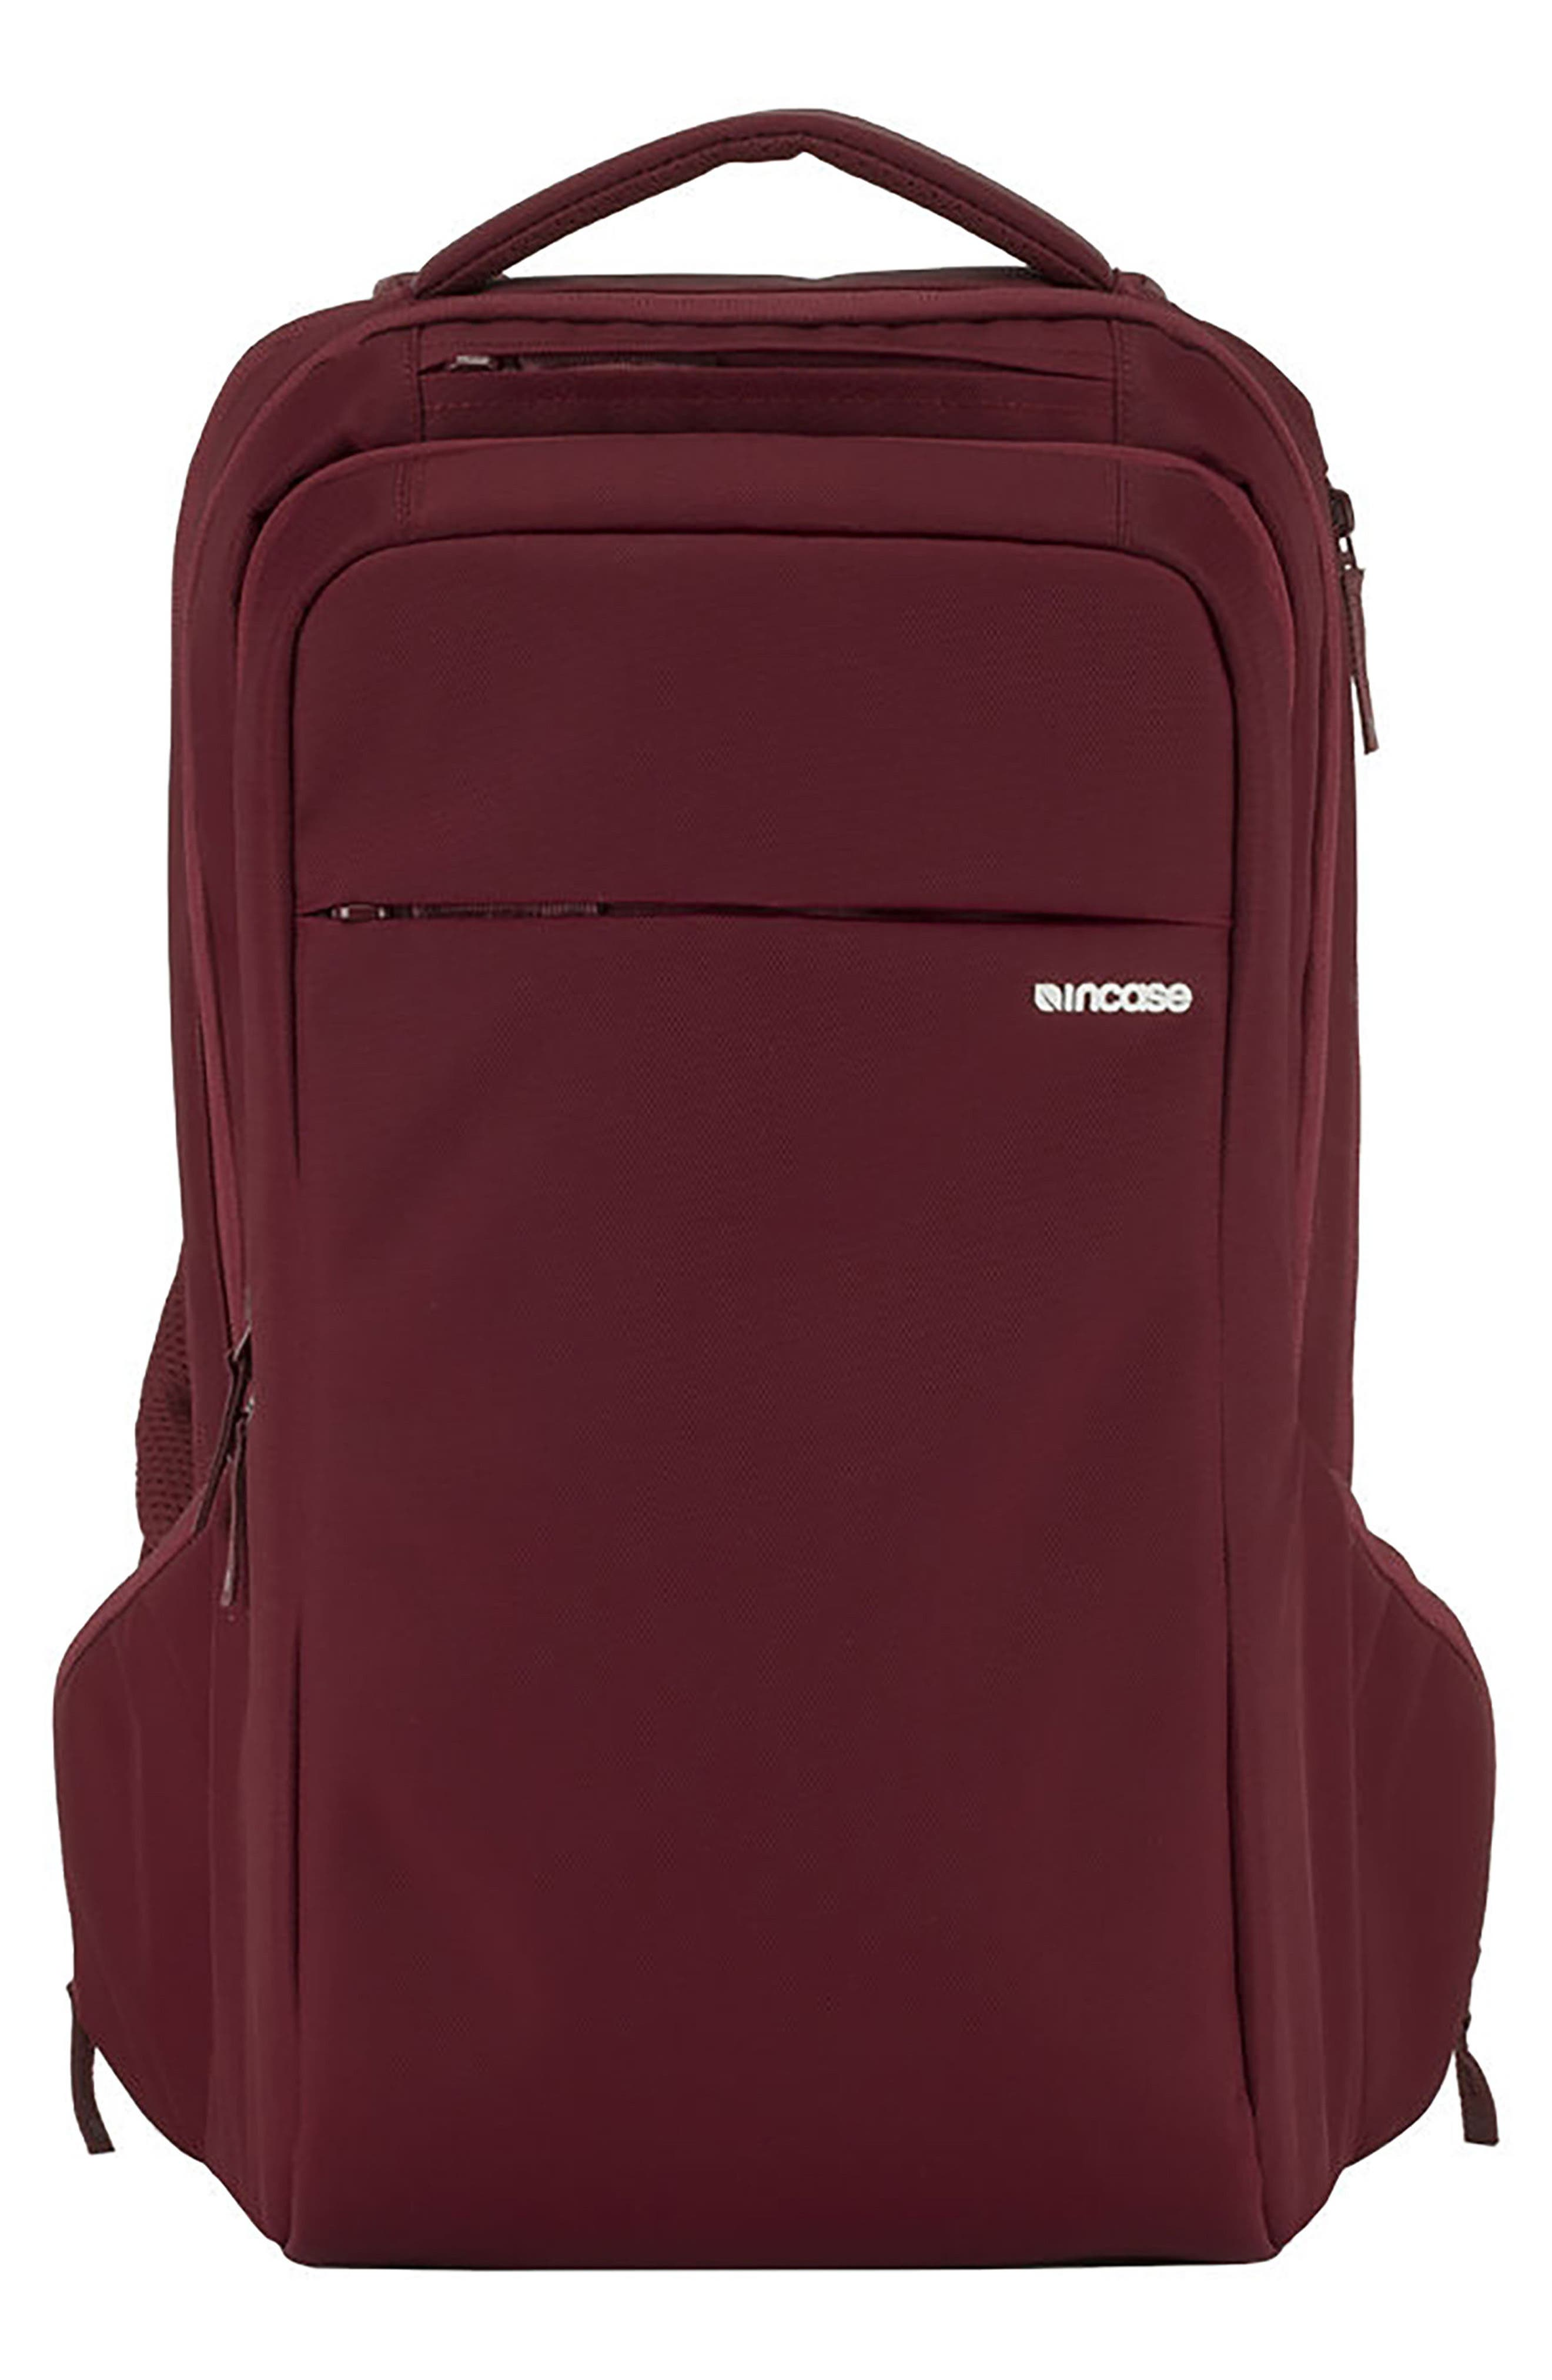 Icon Backpack,                             Main thumbnail 1, color,                             DEEP RED